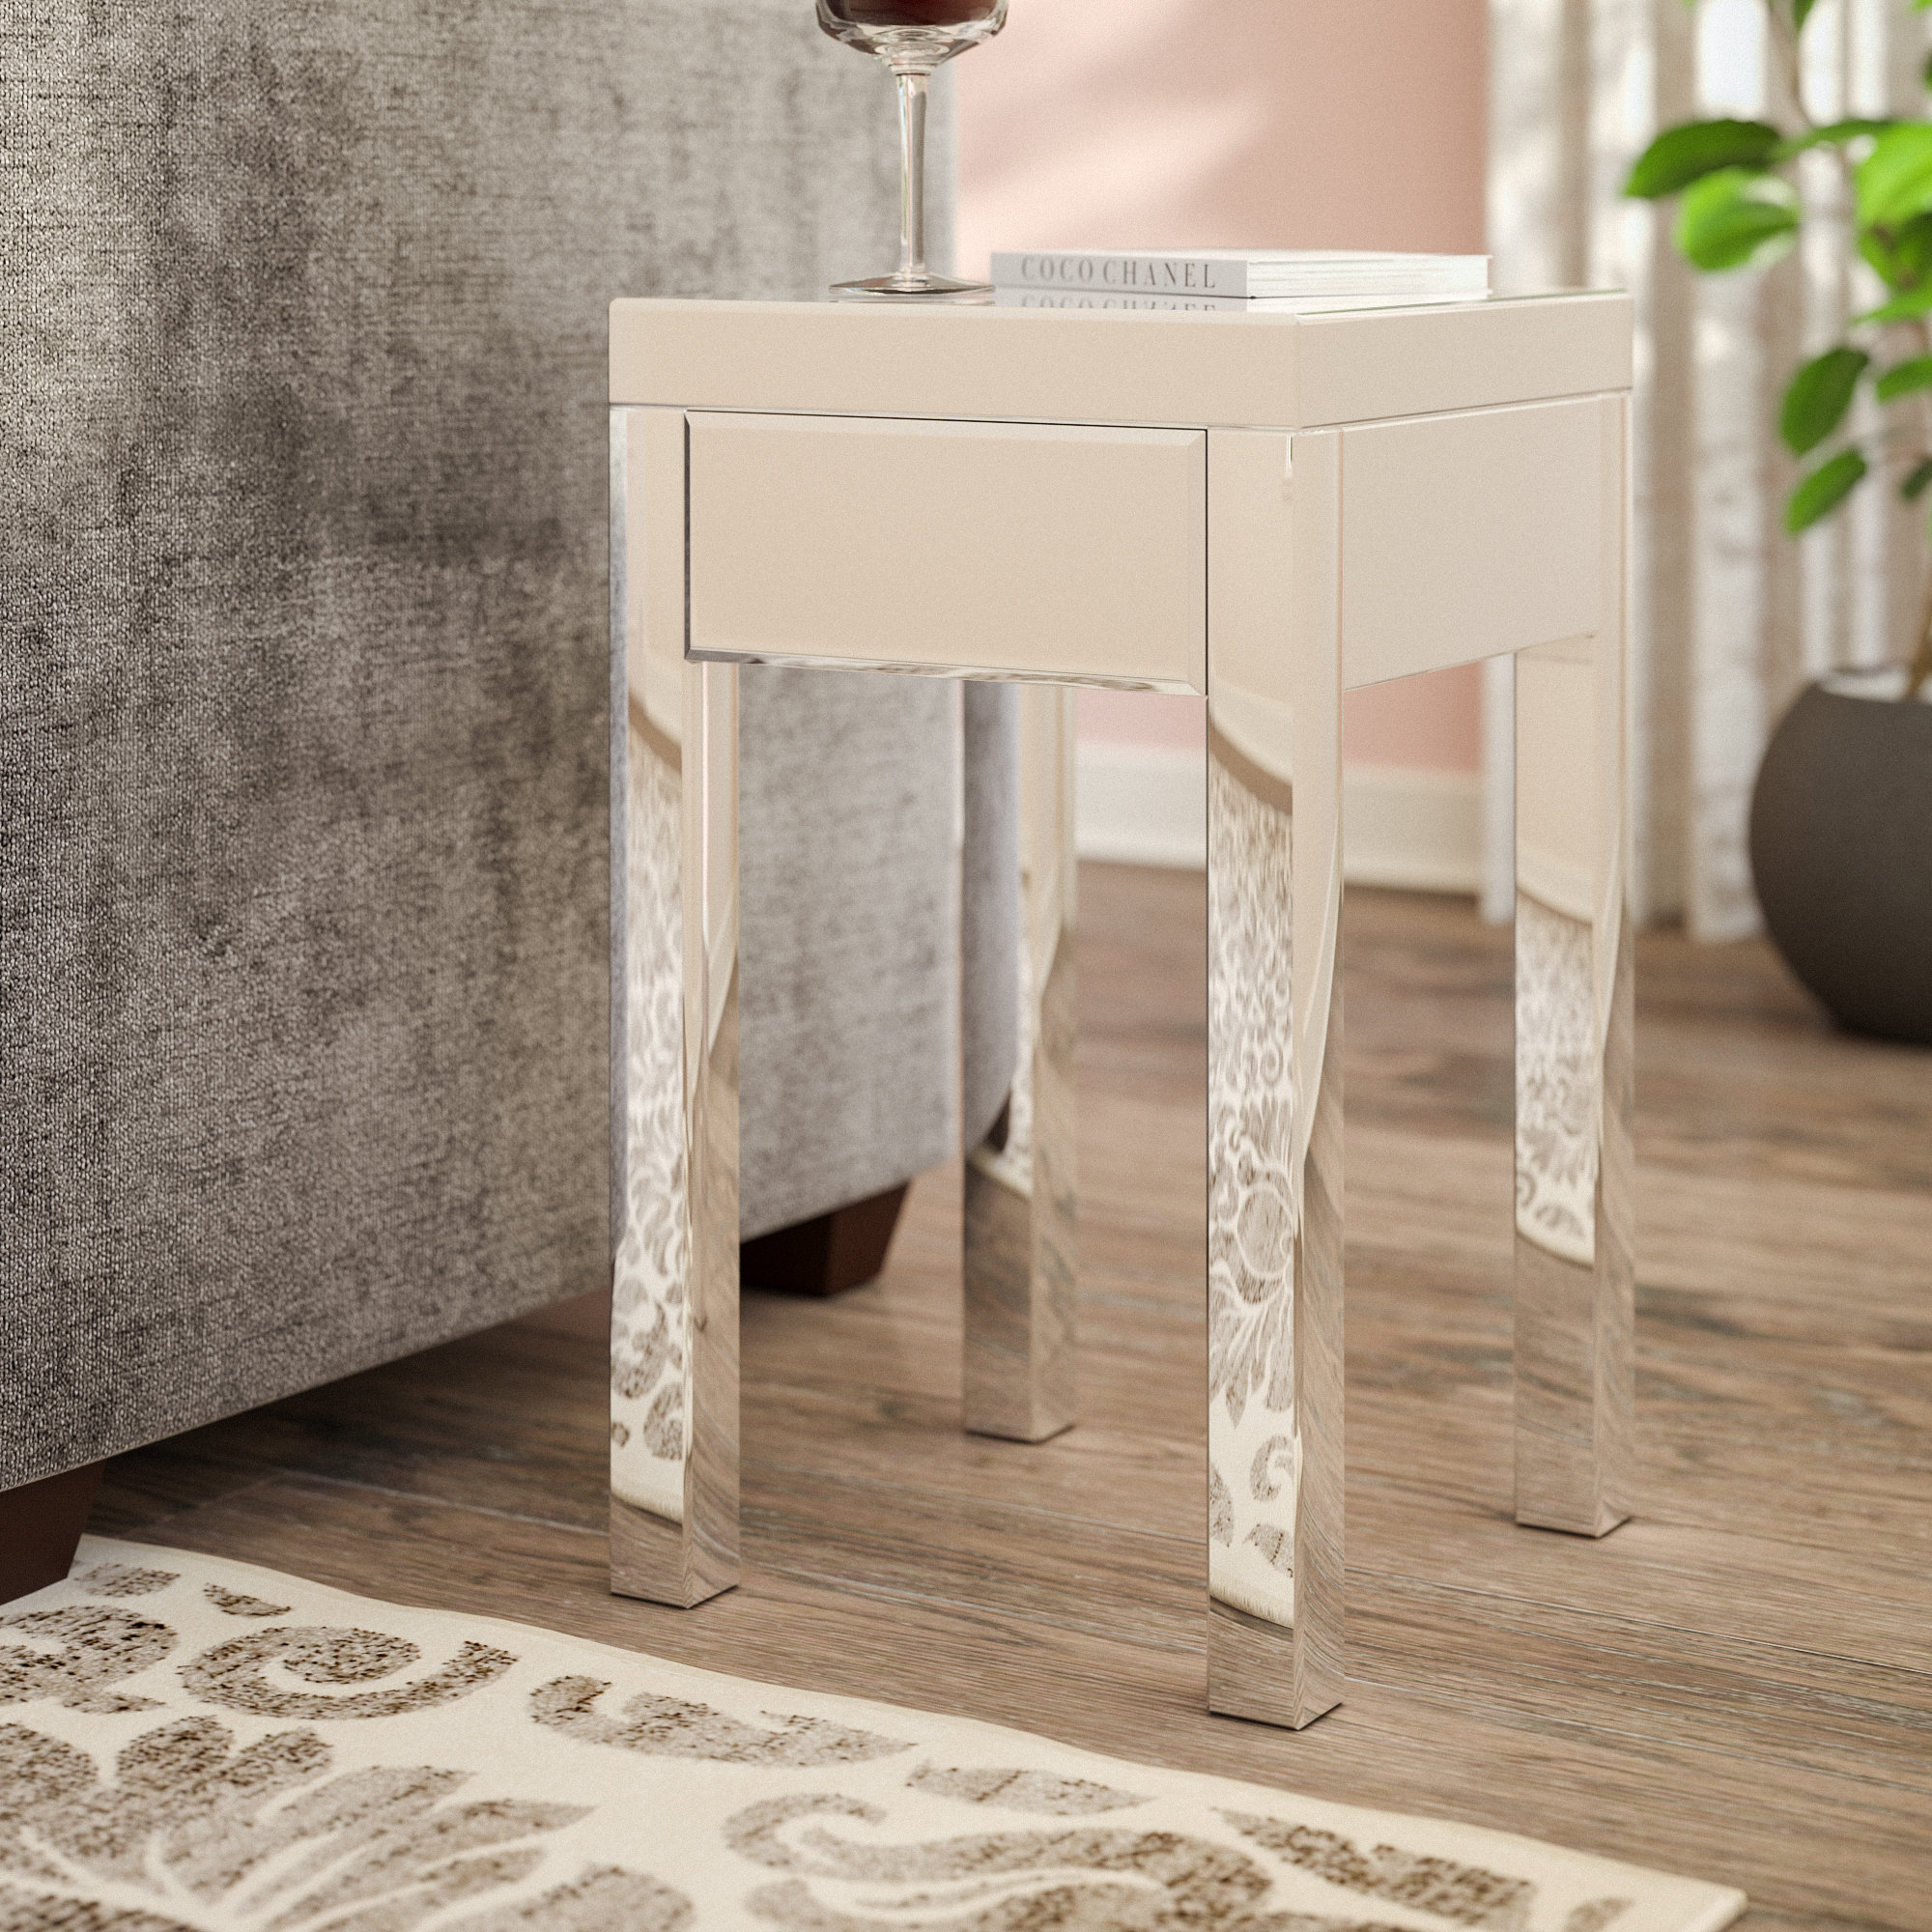 small mirrored accent table keels end with storage drawer west elm reclaimed oak metal folding side pier outdoor furniture pendant lighting universal broadmoore mid century entry